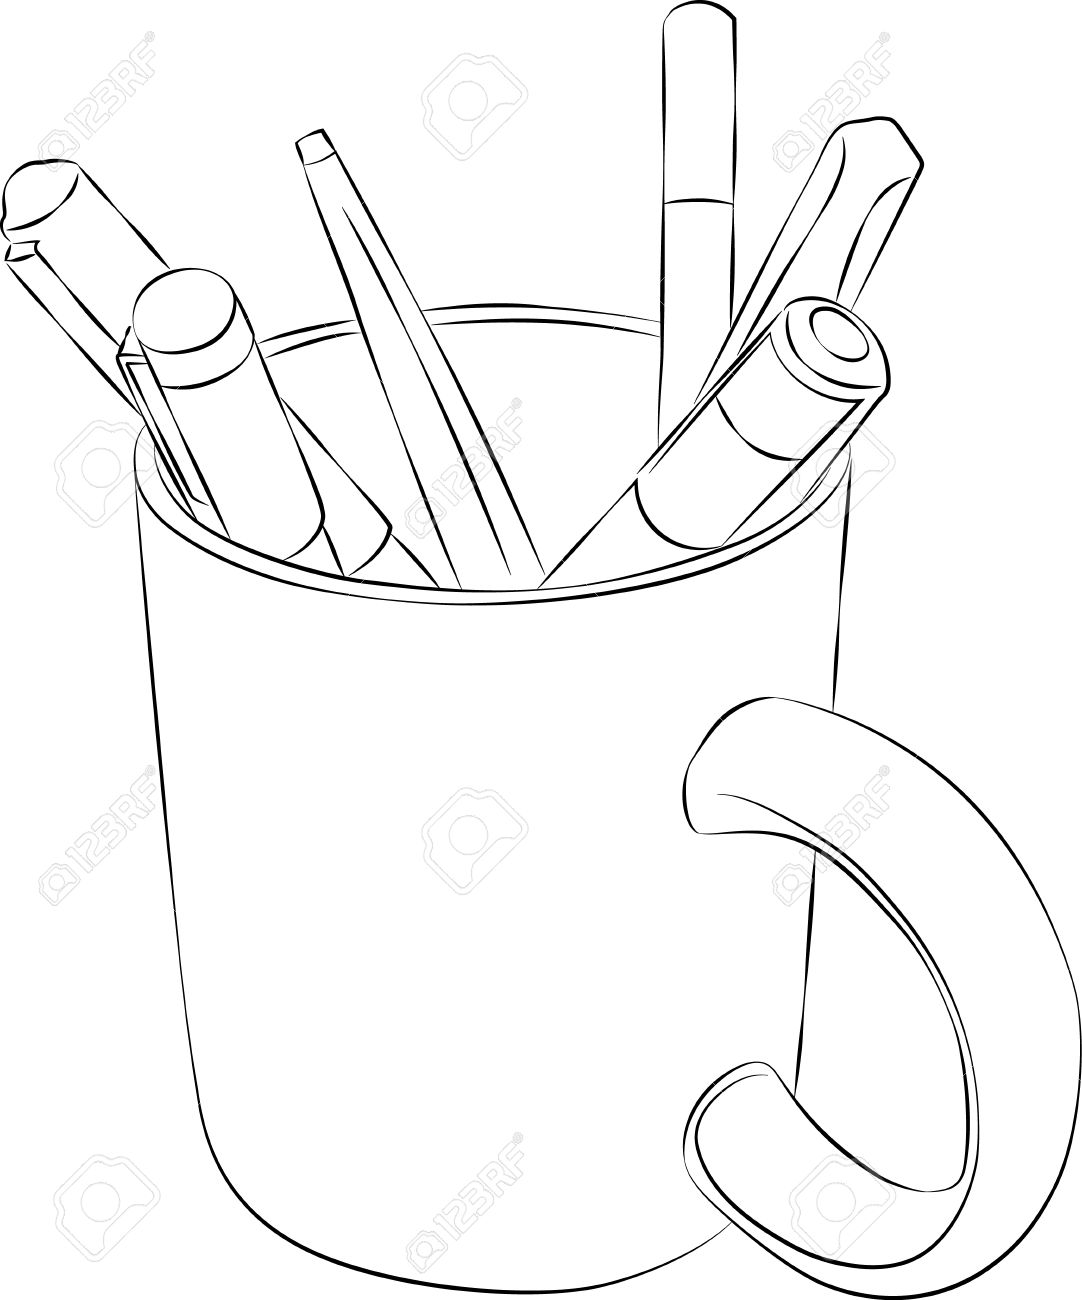 Drawing Sketching Sketched Line Drawing of a Mug